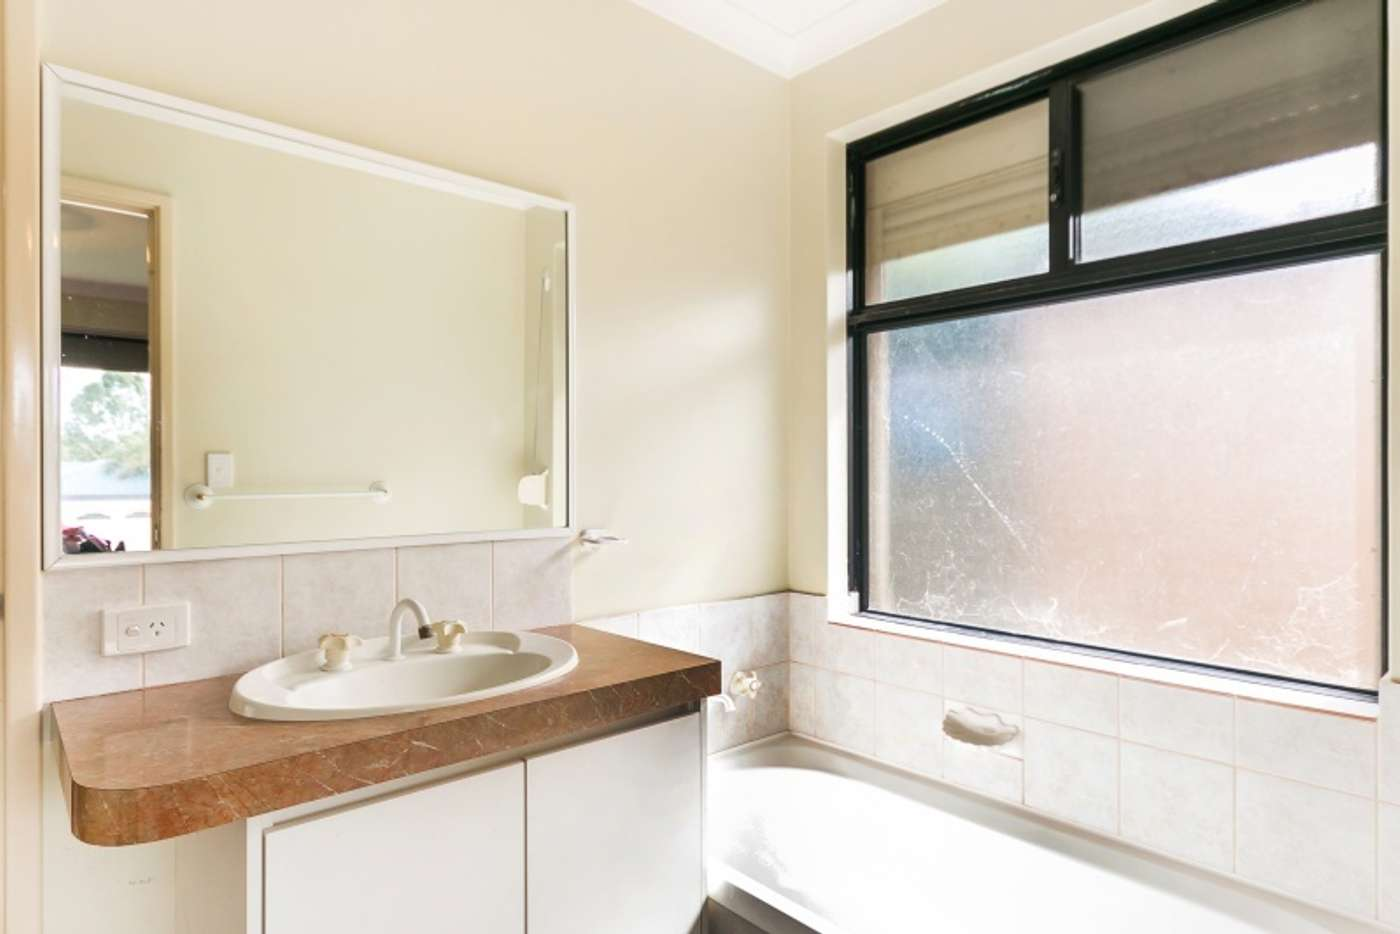 Seventh view of Homely house listing, 3 Ranunculus Court, Beeliar WA 6164